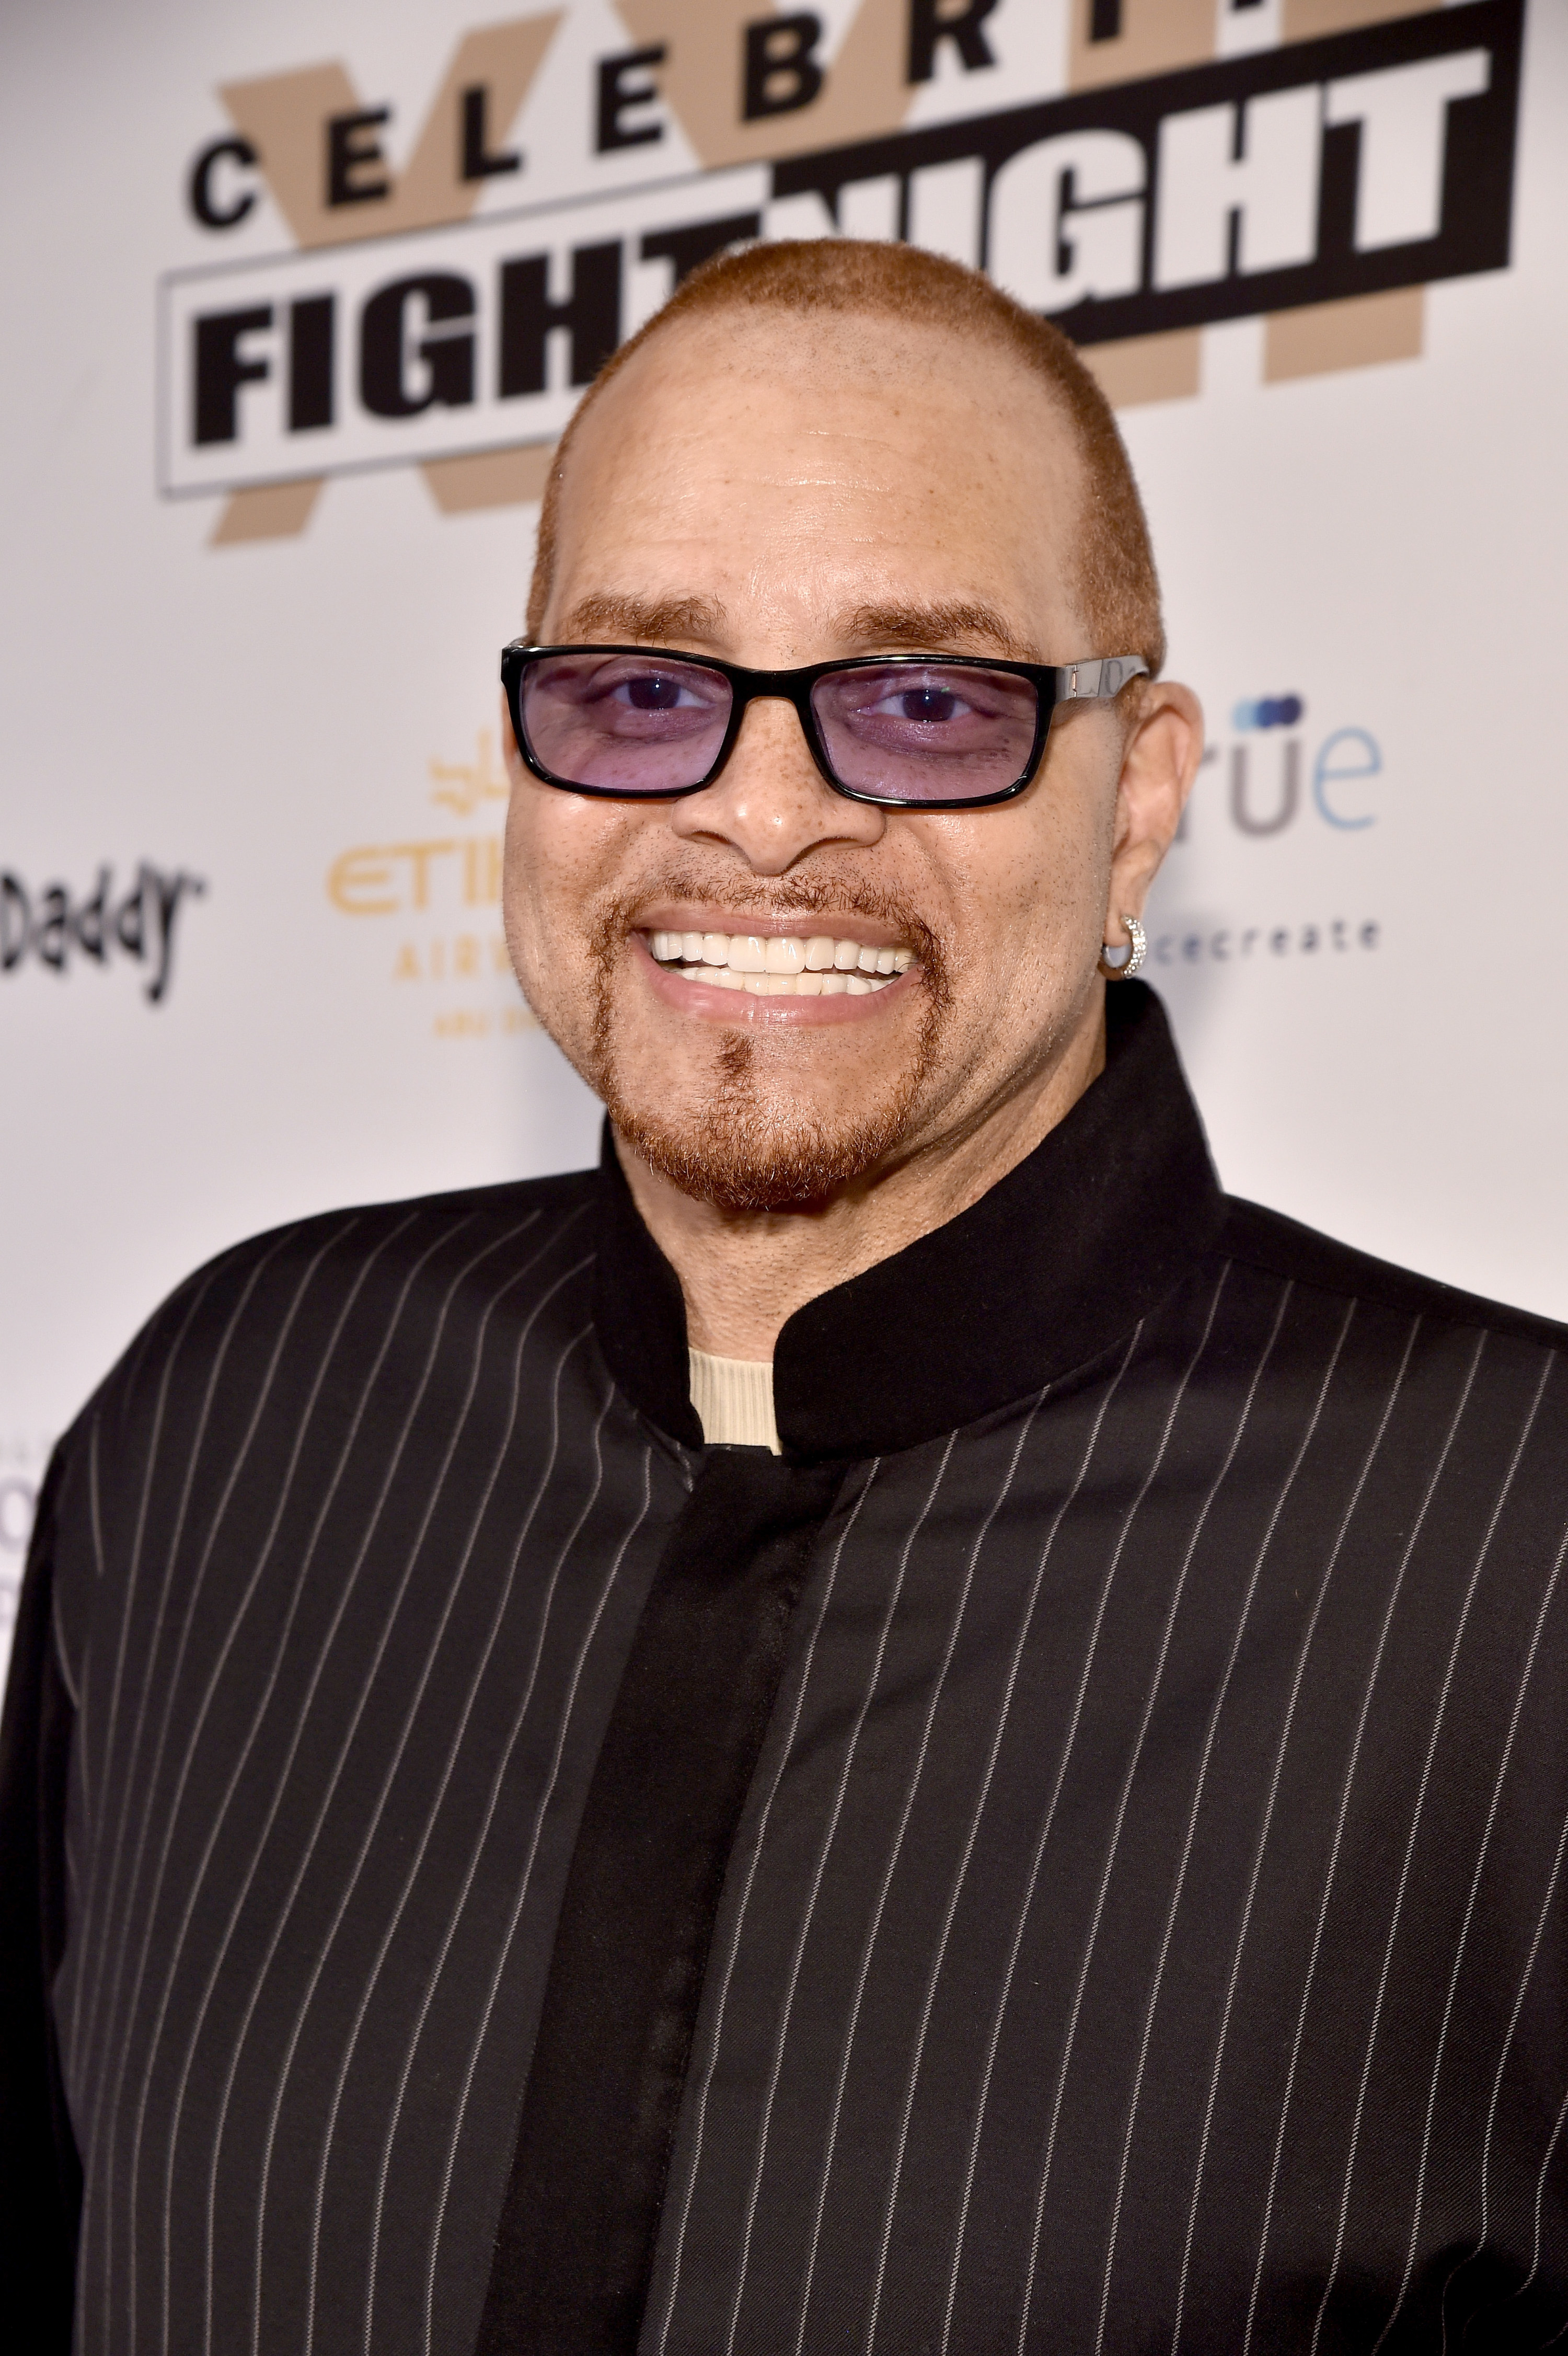 Photo of comedian Sinbad in a pin-striped jacket and black glasses